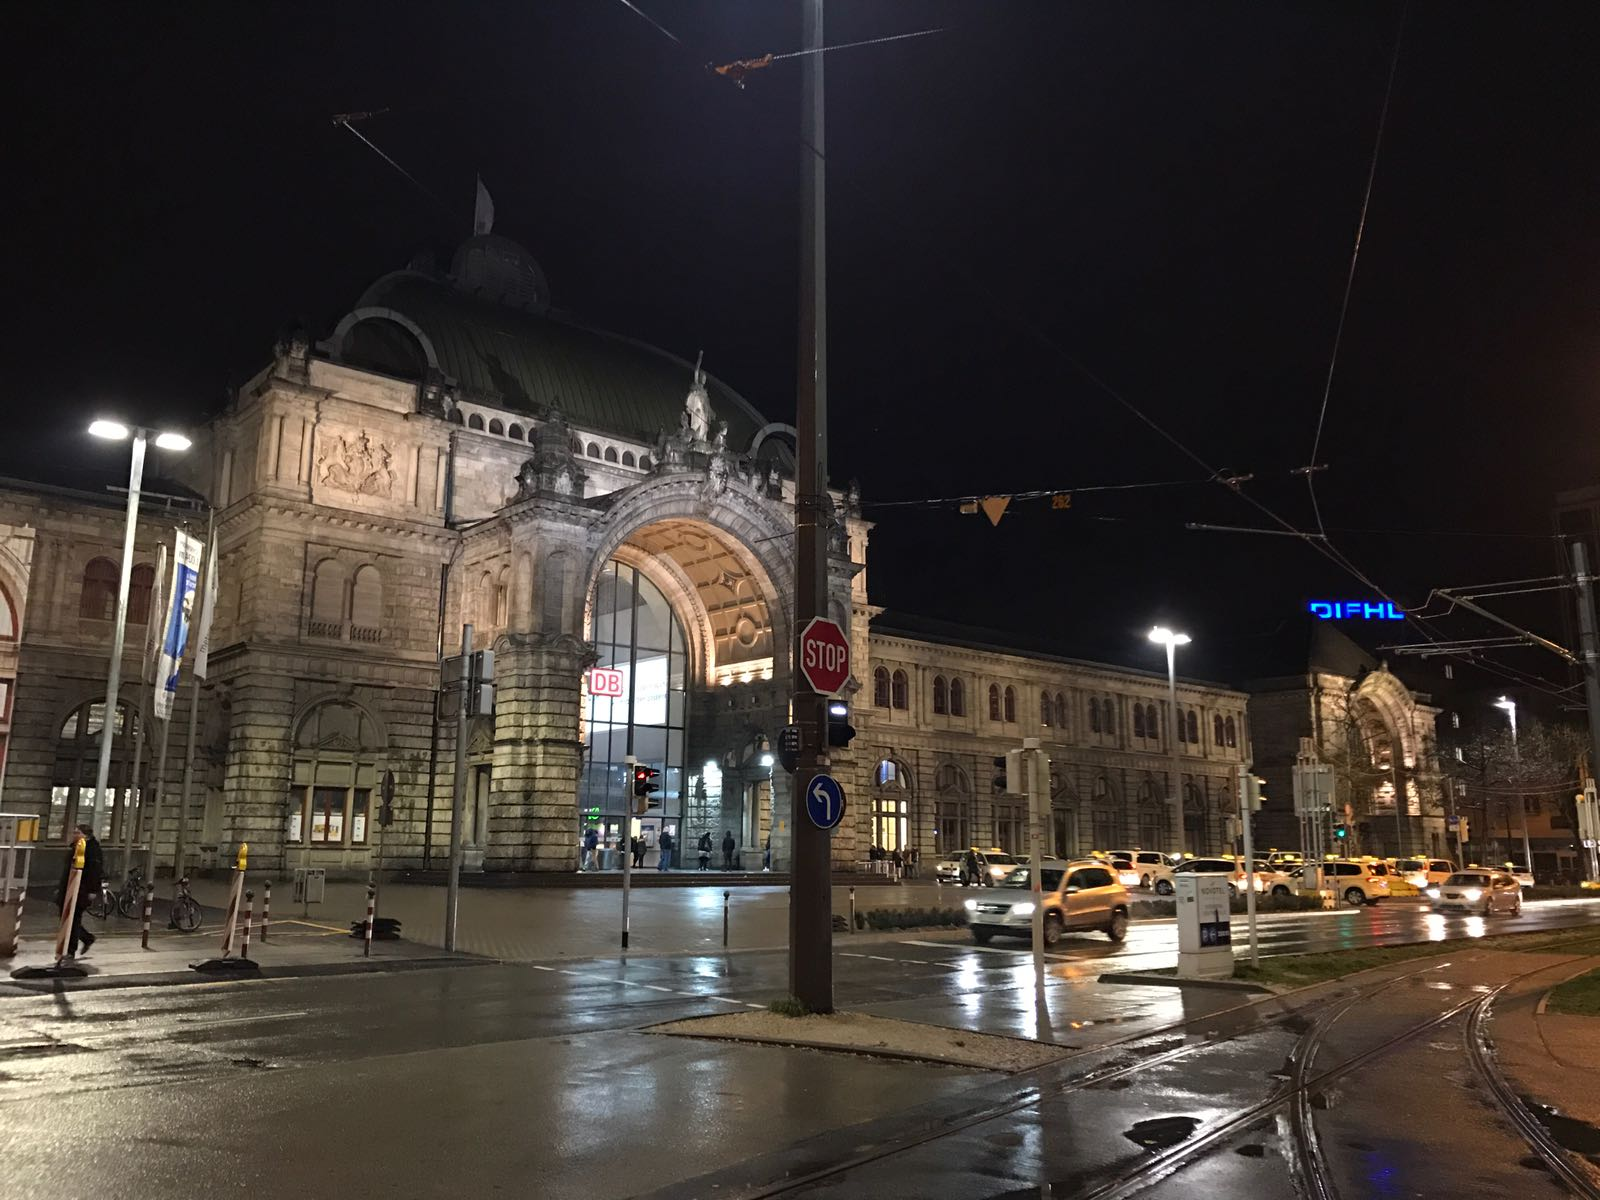 Nuremberg Hauptbahnhof at night.